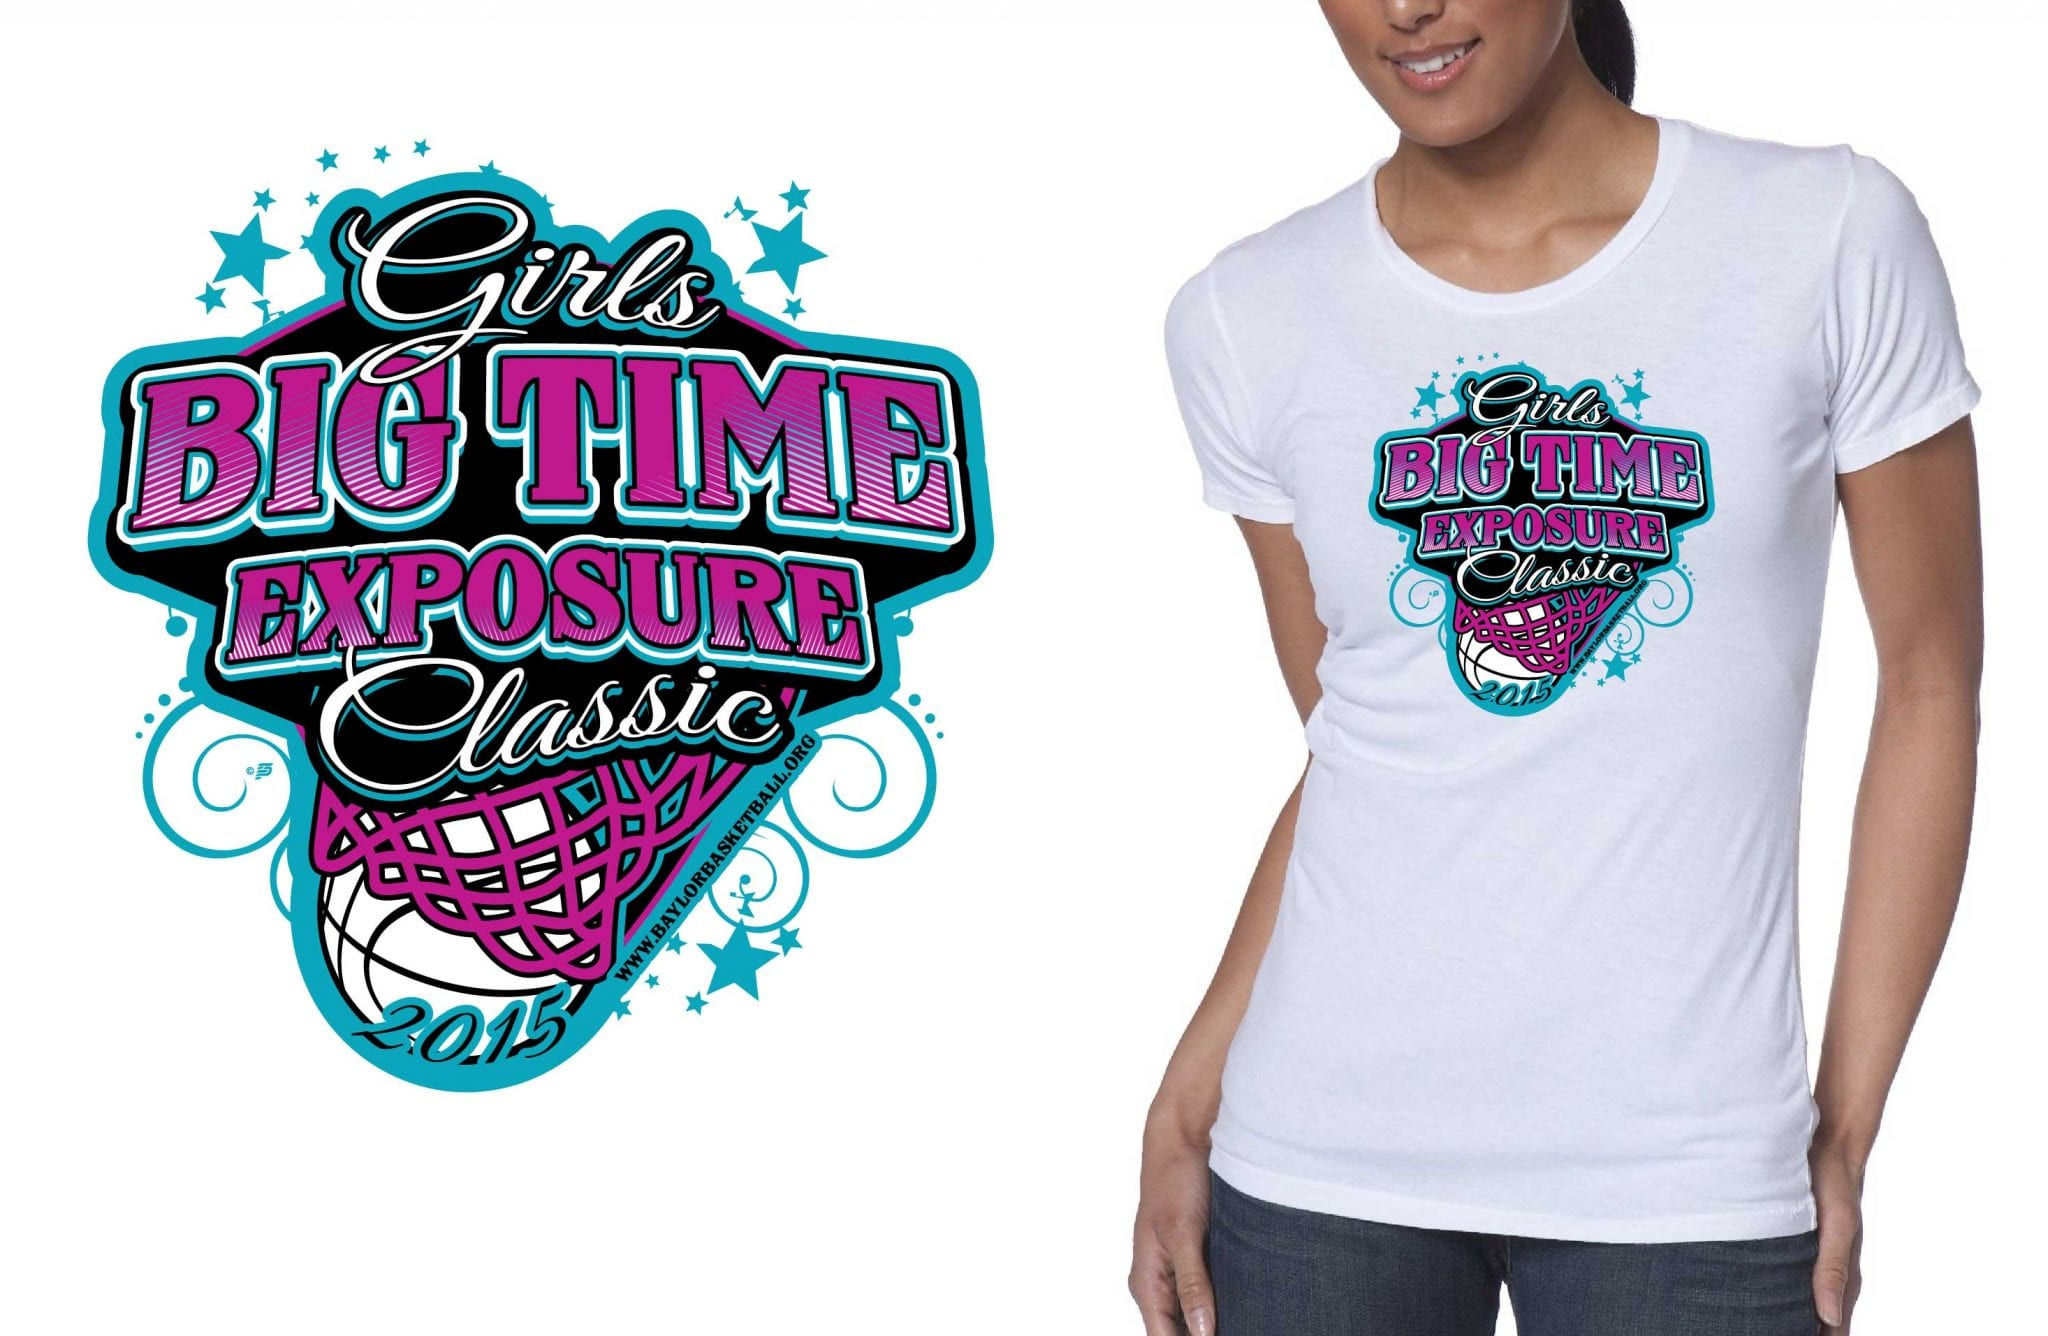 2015 Girls Big Time Exposure Classic PRINT READY